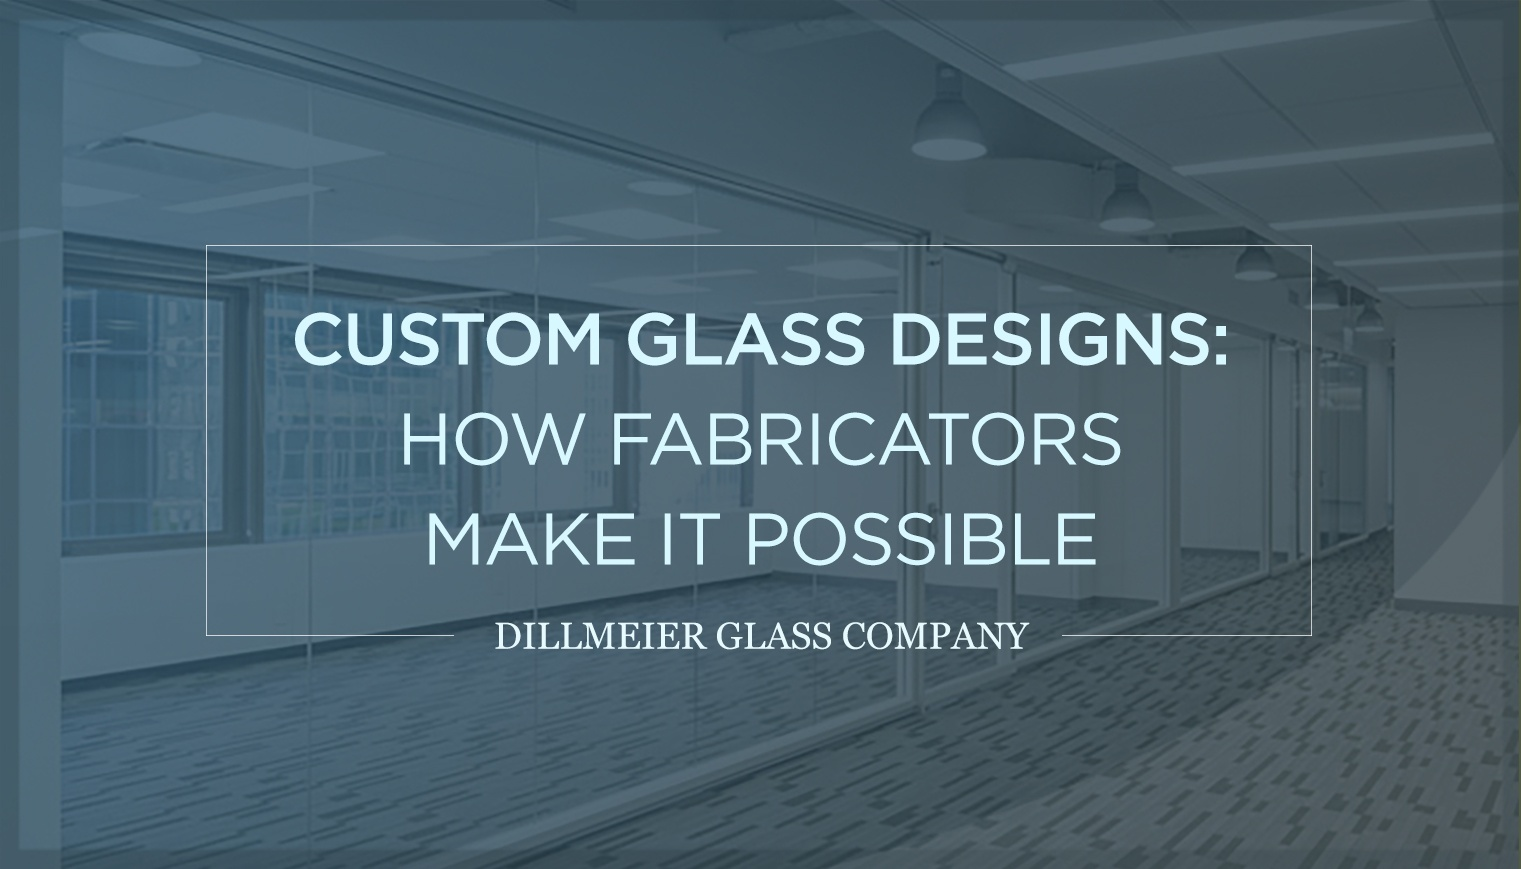 Custom-Glass-Designs--How-Fabricators-Make-It-Possible